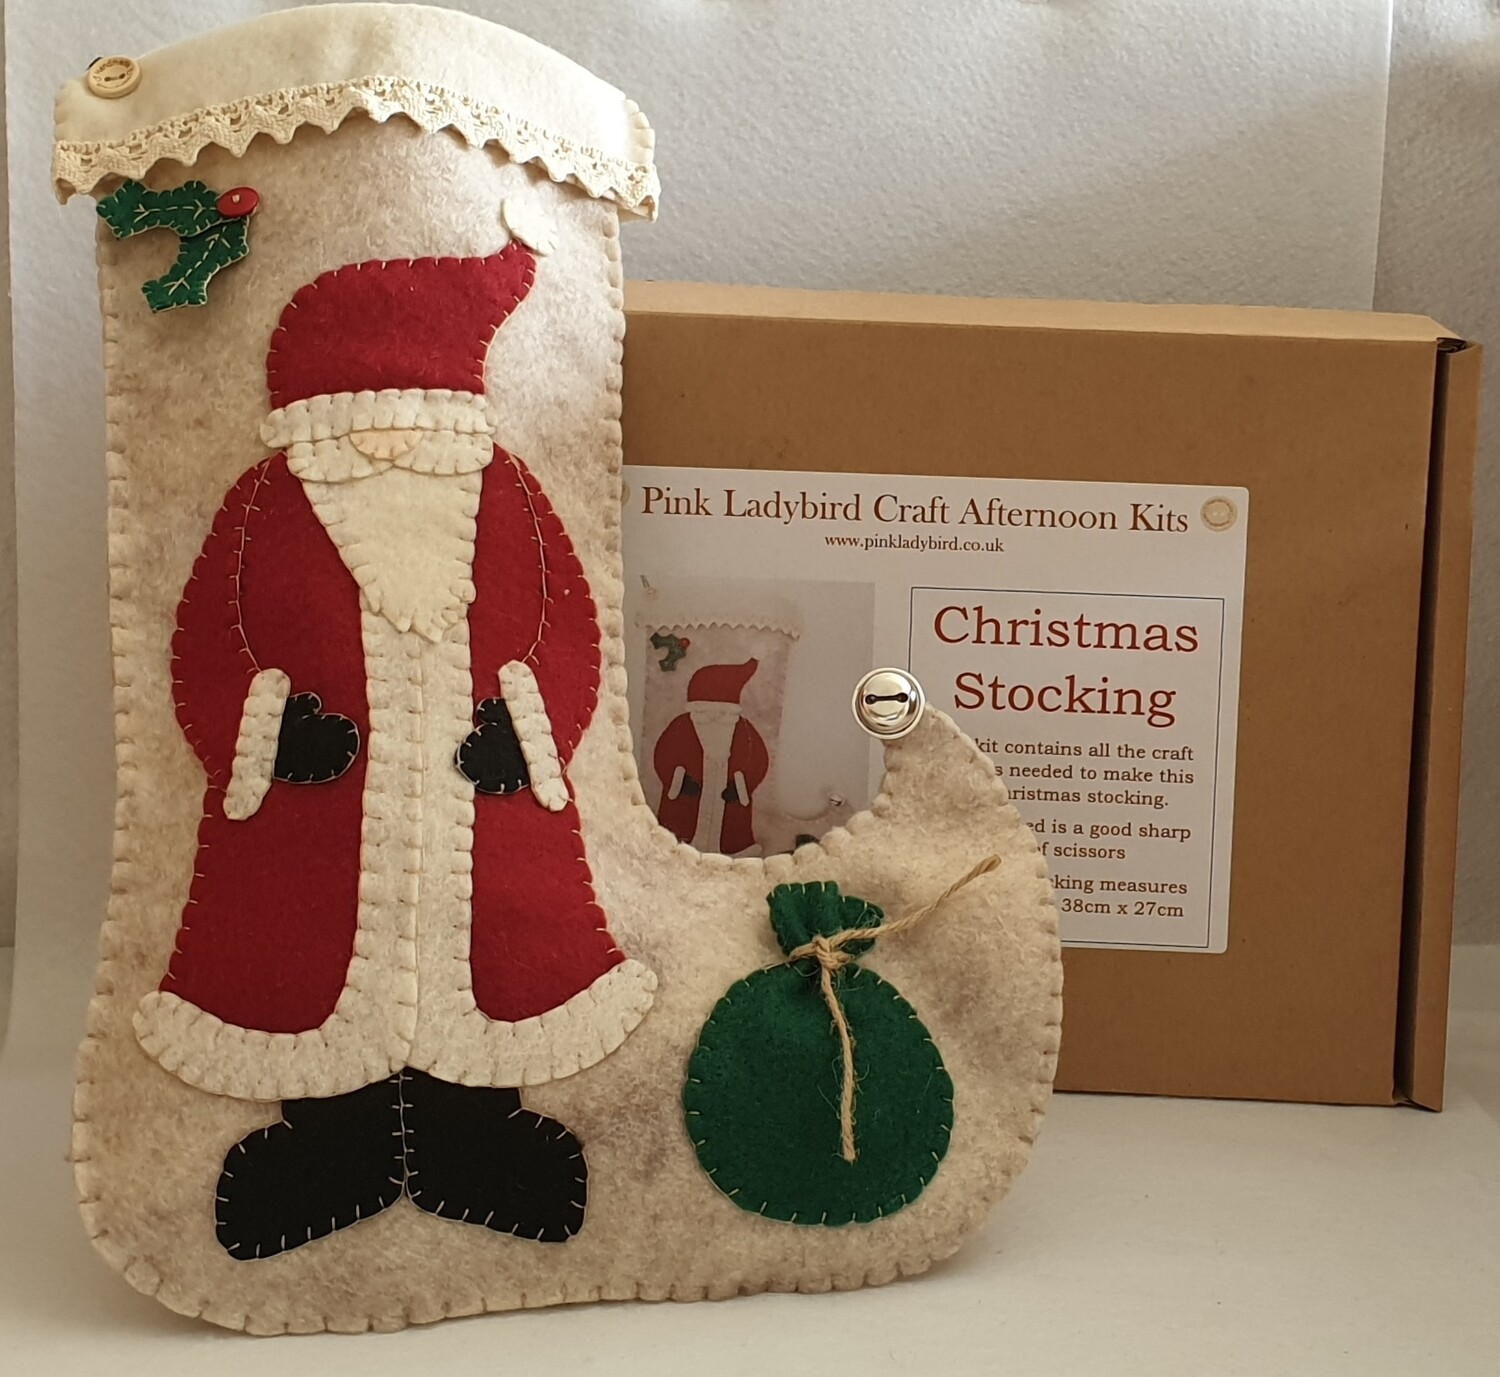 Craft Afternoon Kit - Christmas Stocking